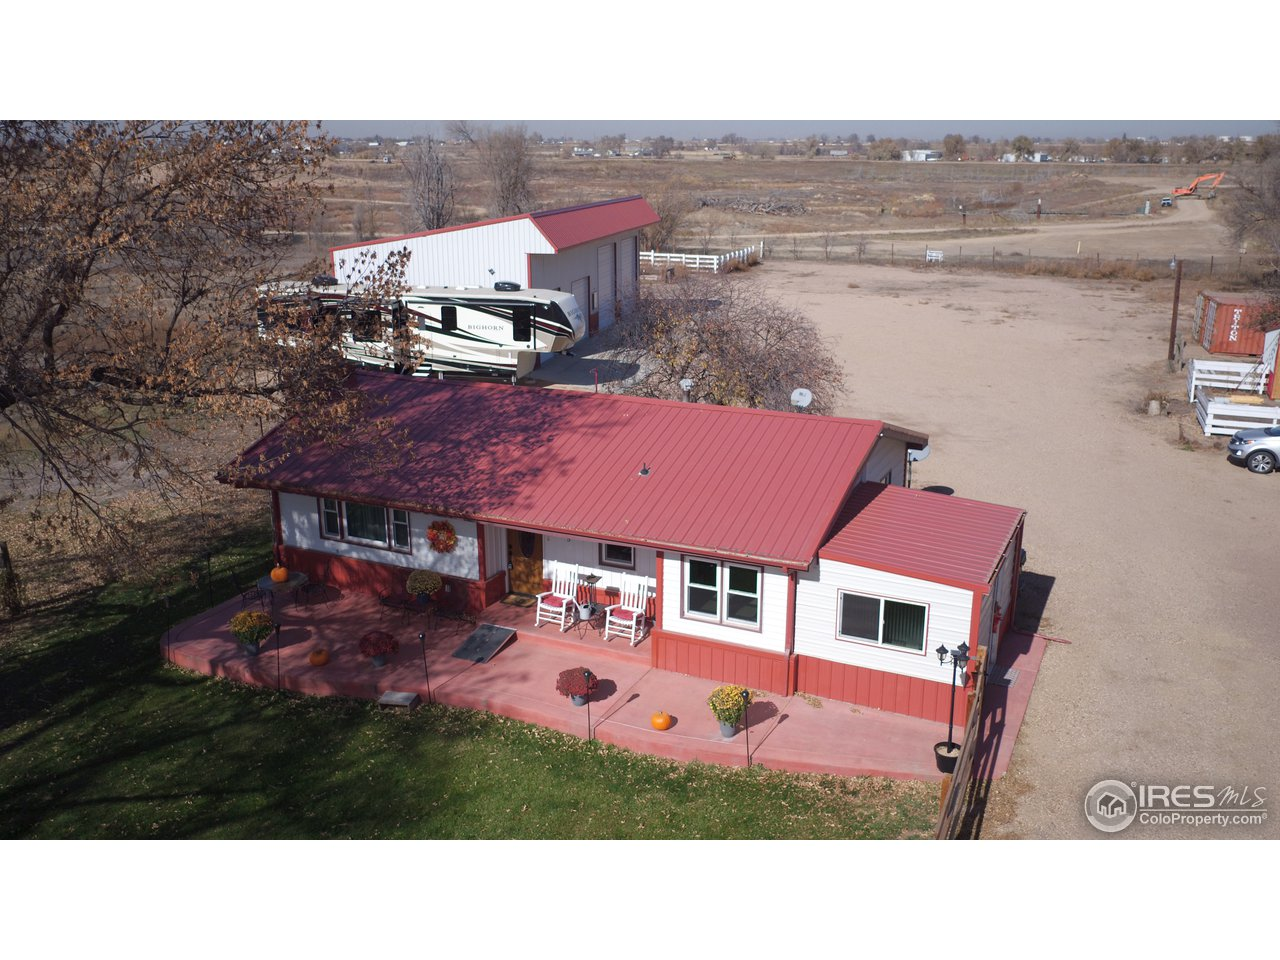 6 acres with a huge 1,920 sq foot shop right outside the city limits! This one of a kind property has several updates.  Sporting an incredible shop with rolling staircase, large hay shed, another storage area, new AC, new furnace, fence and much more. This comes with 1/3 water share for irrigation and has a ditch along the east edge of the property making for a very peaceful home. This really offers so much more that you must see!